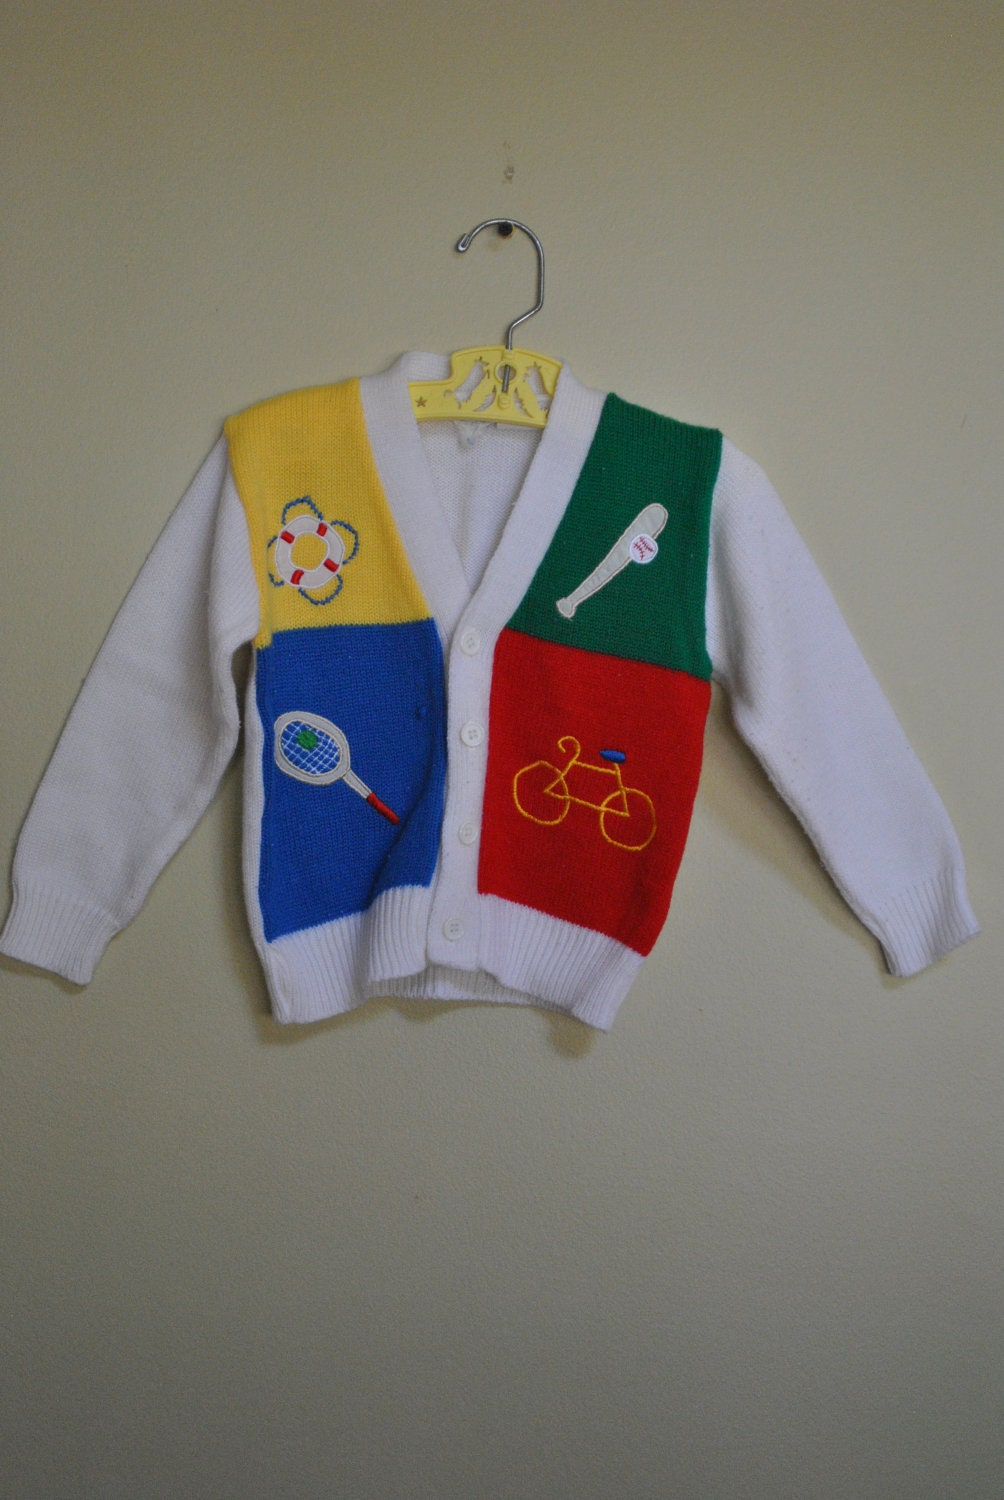 Vintage VARSITY Style Sweater Sports Themed Color Block size 3T - 4T - IvoryBerry